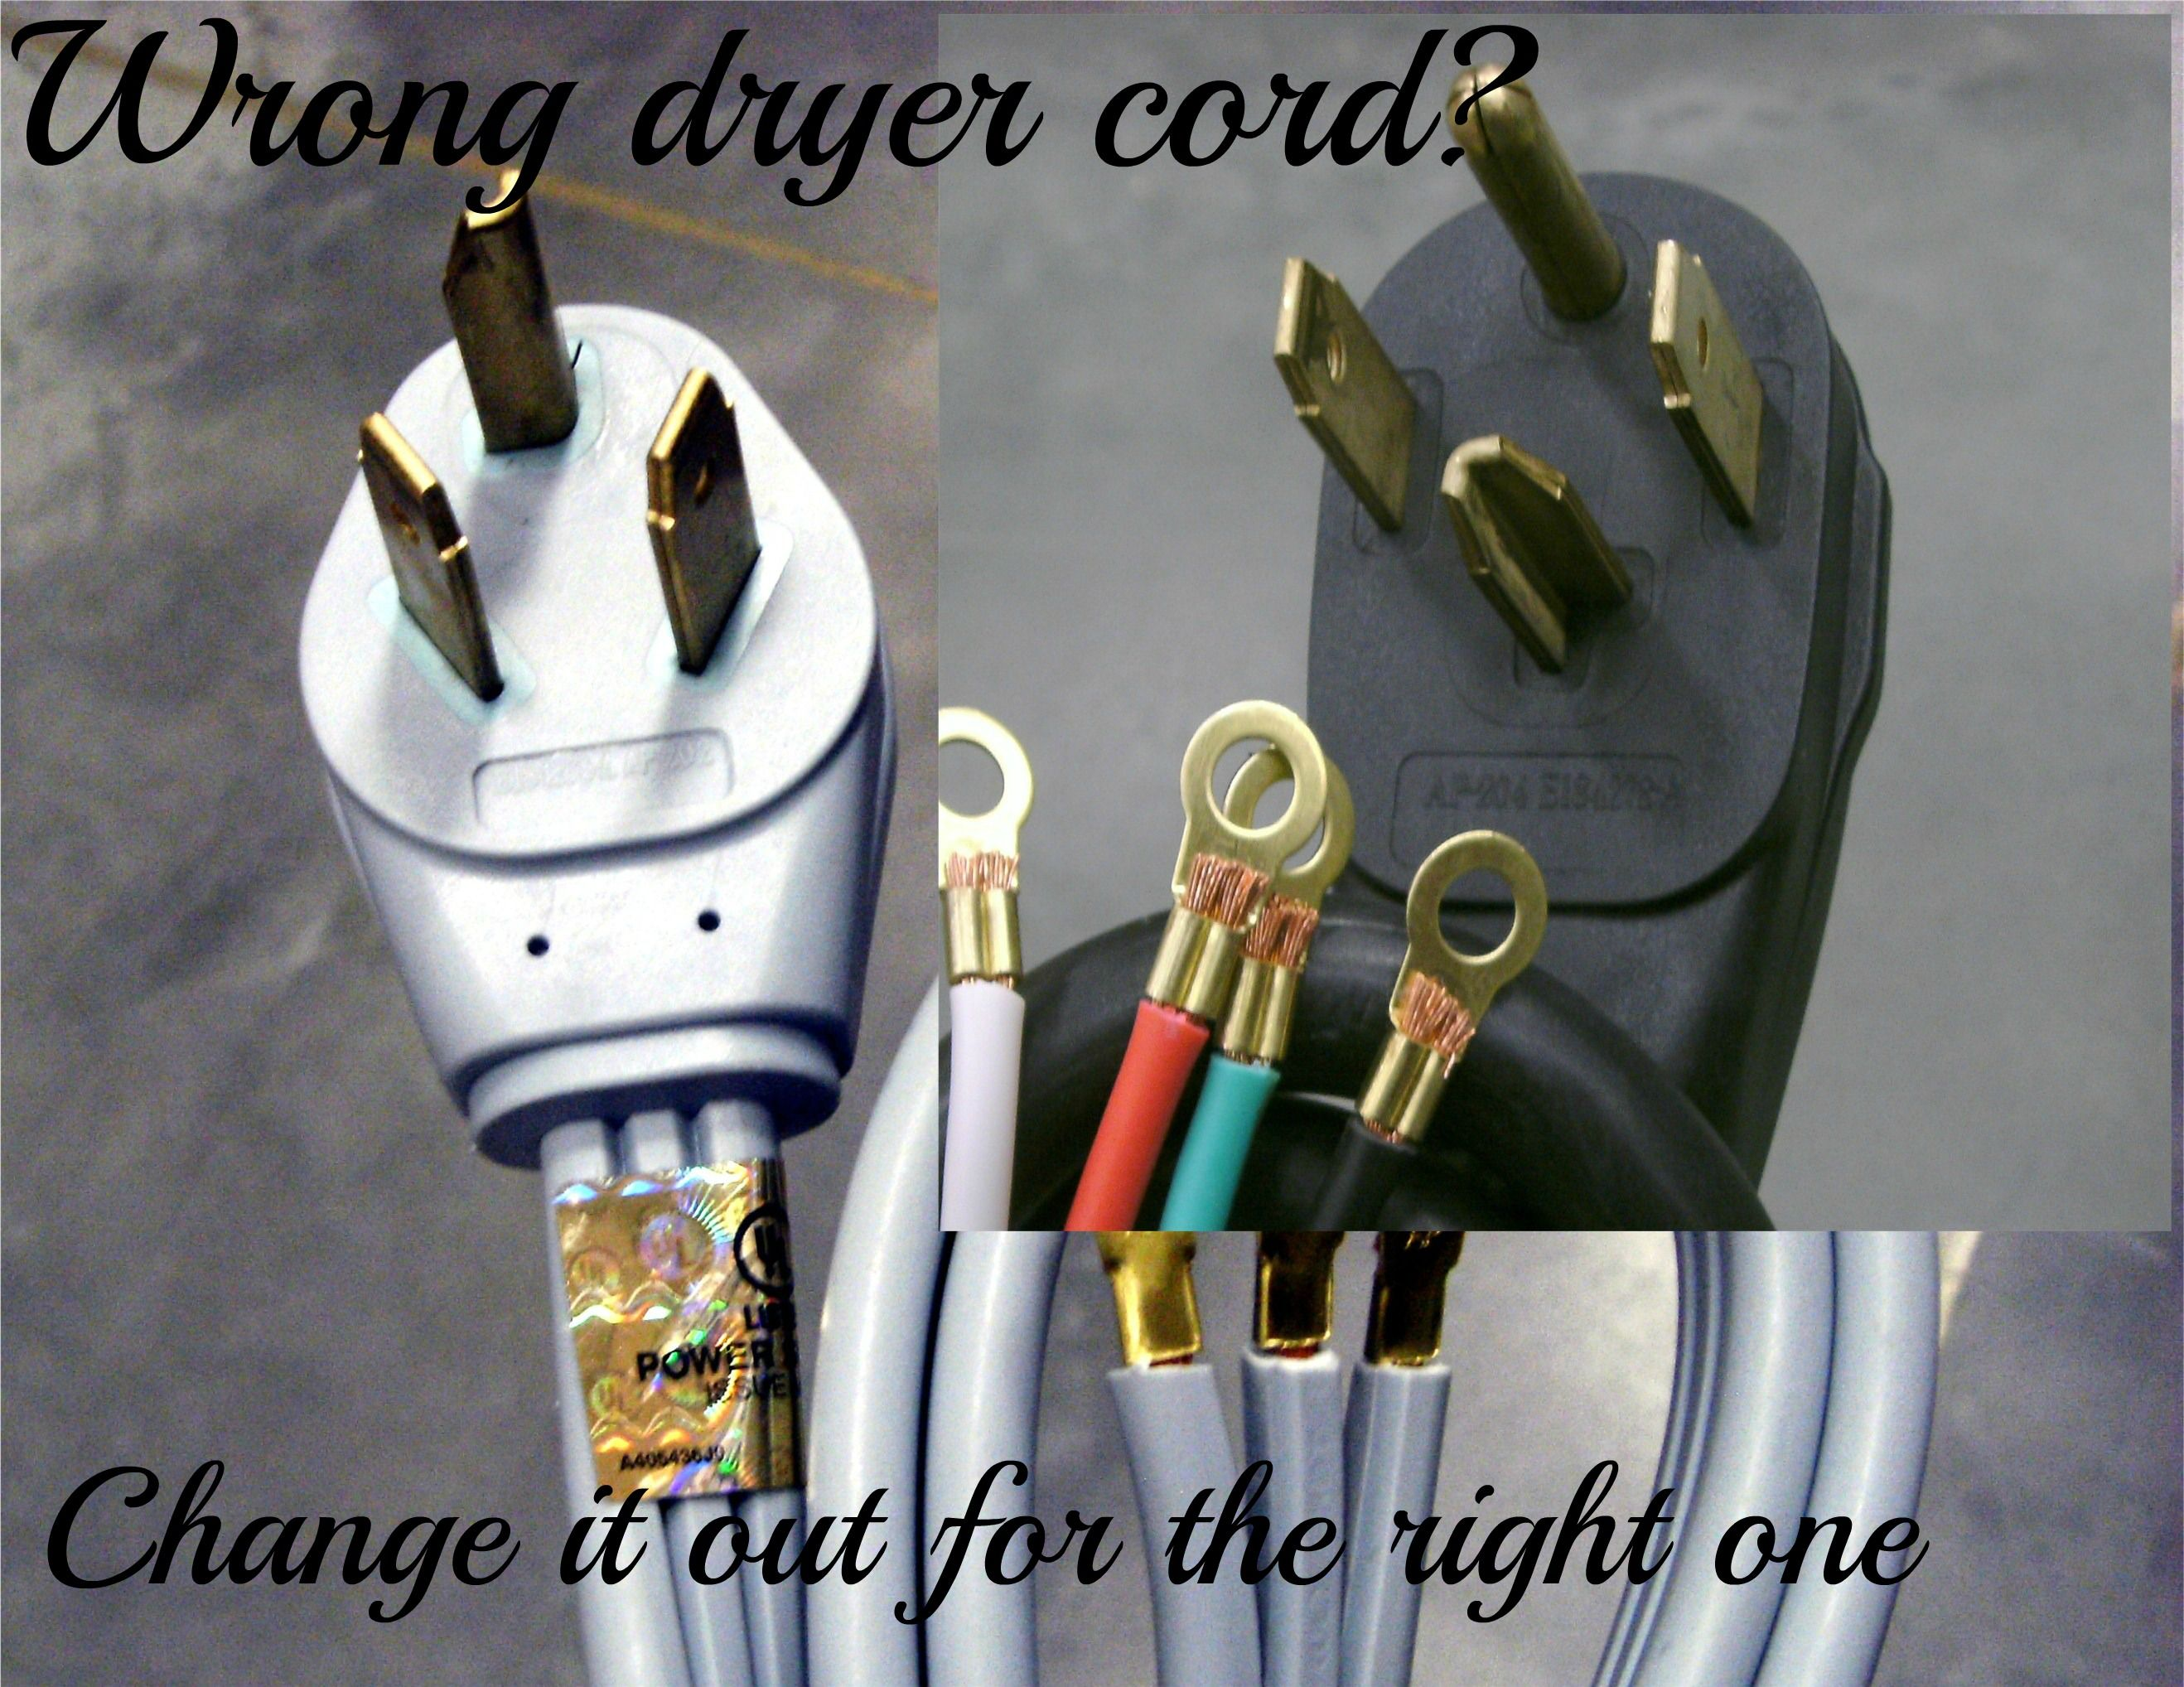 008f3bebc08145f0b0901e4baf420a22 changing a 3 prong to 4 prong dryer plug and cord cord, change 3 wire dryer plug diagram at virtualis.co